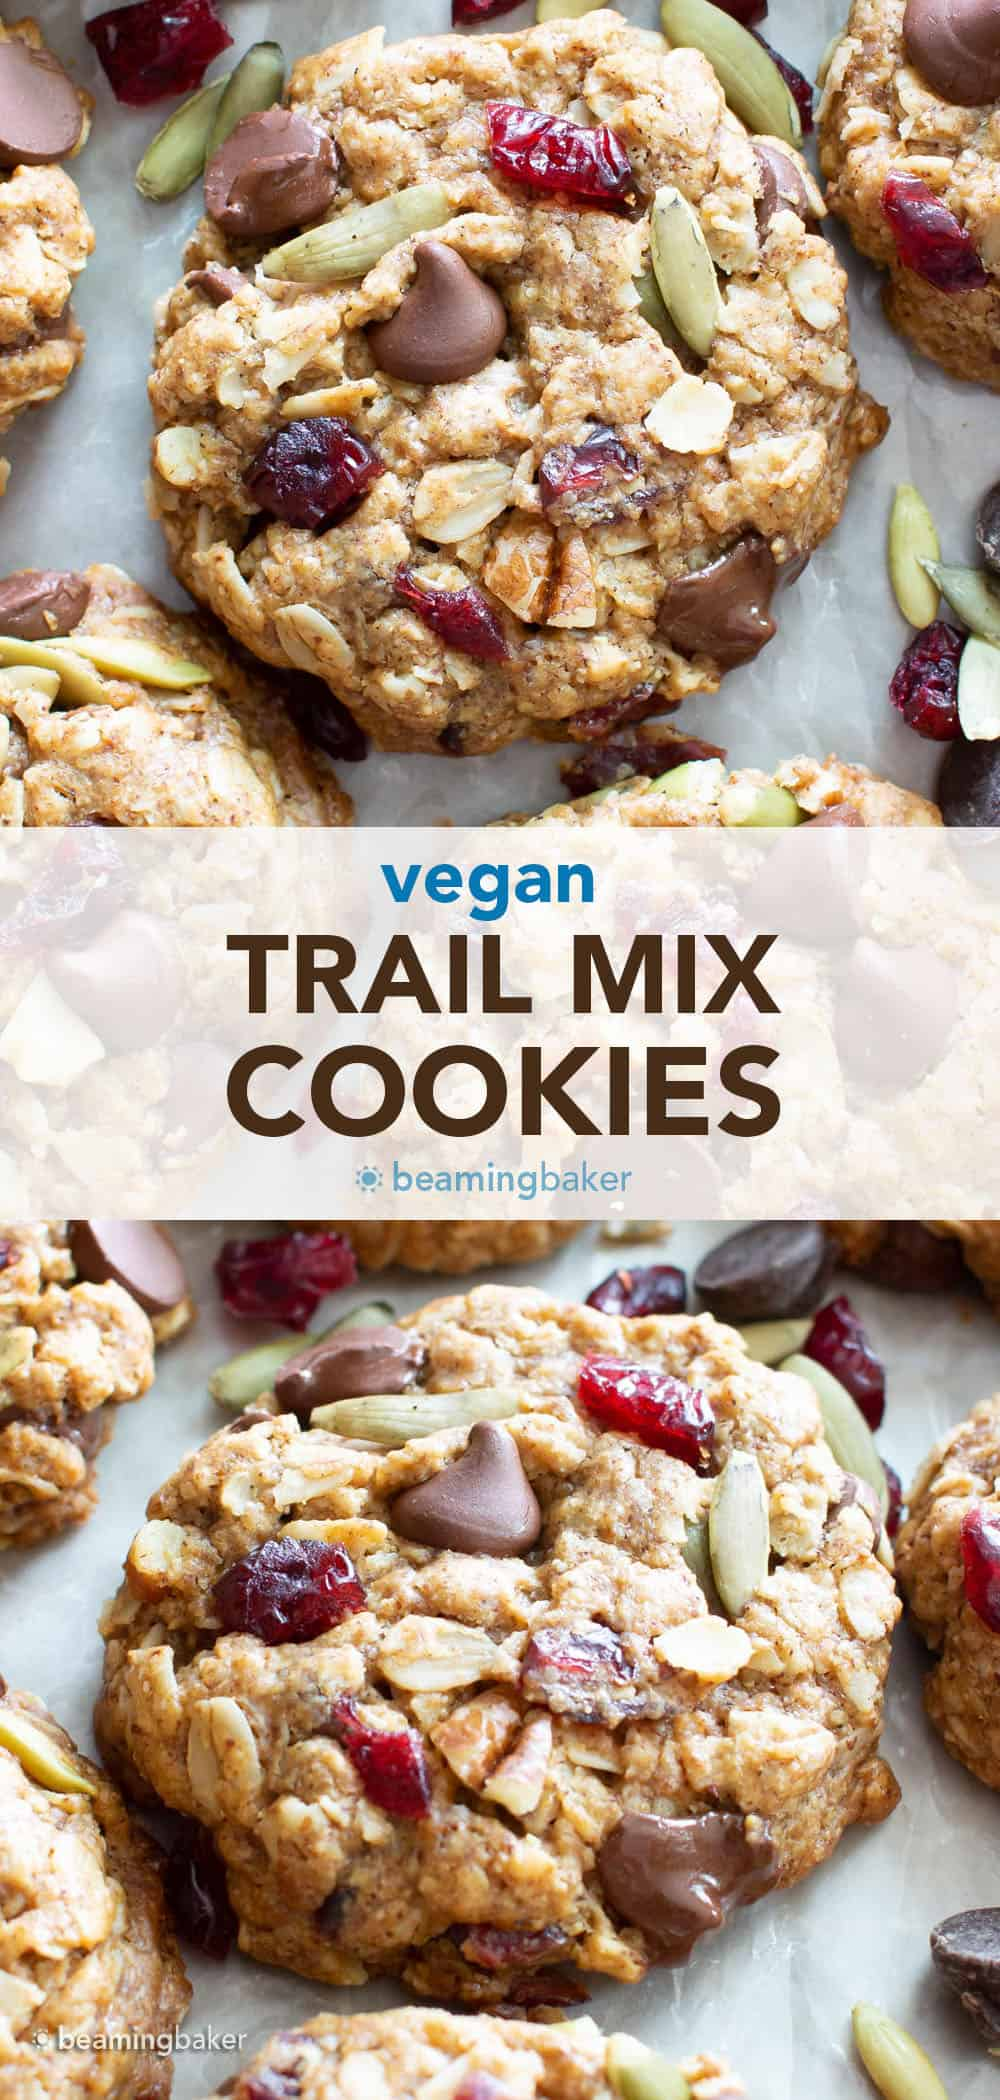 Chewy Vegan Trail Mix Cookies: an easy recipe for vegan trail mix cookies that are delightfully chewy and packed with healthy fruits, nuts and seeds! #Vegan #TrailMix #Cookies   Recipe at BeamingBaker.com